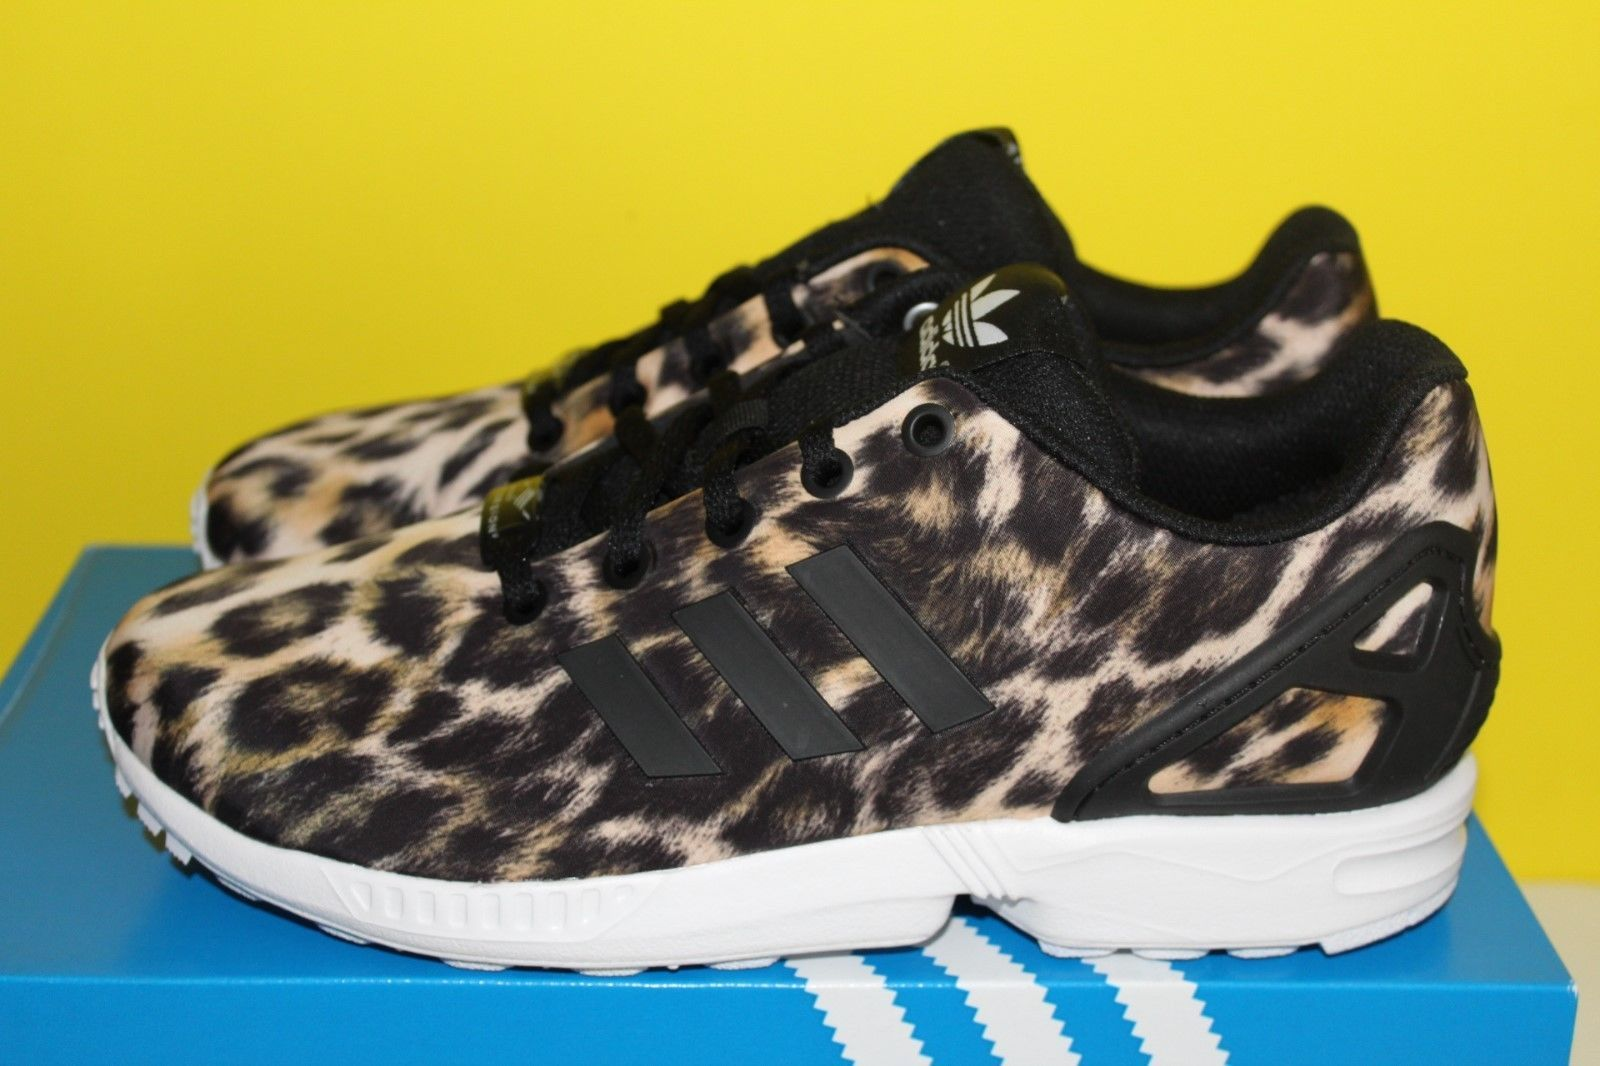 new concept 79e68 41e7b Adidas ZX Flux Leopard Animal Print Torsion Juniors Girls 5 - 7 Trainers  B25642   eBay